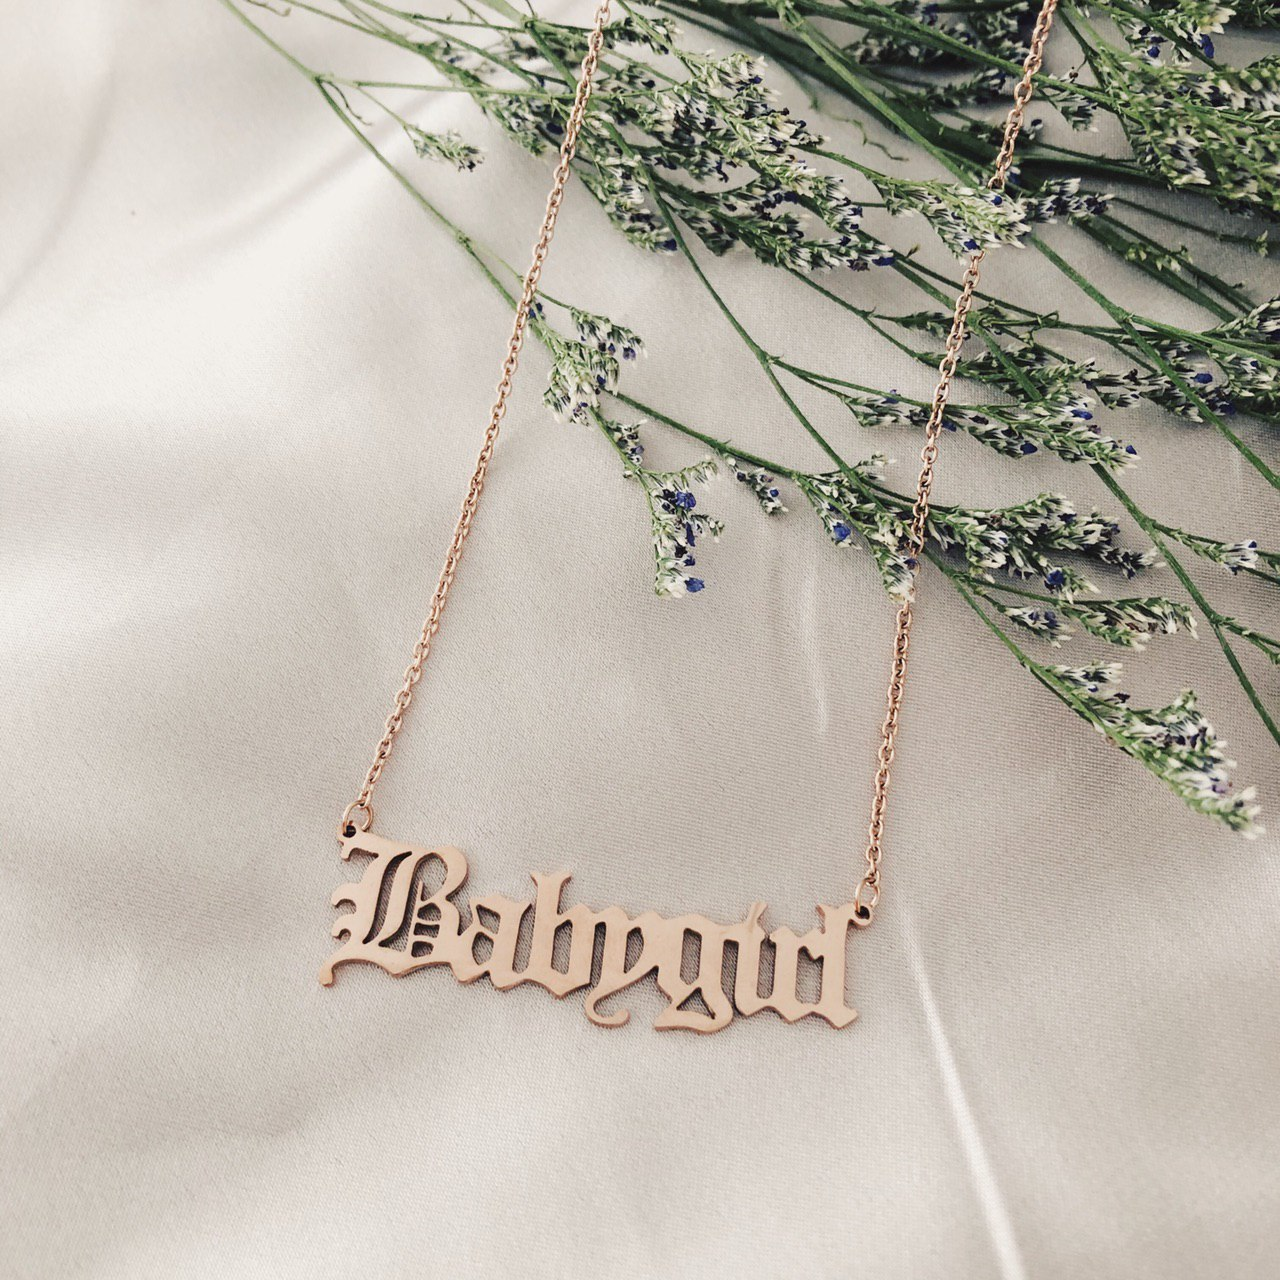 Babygirl necklace TheCloset101